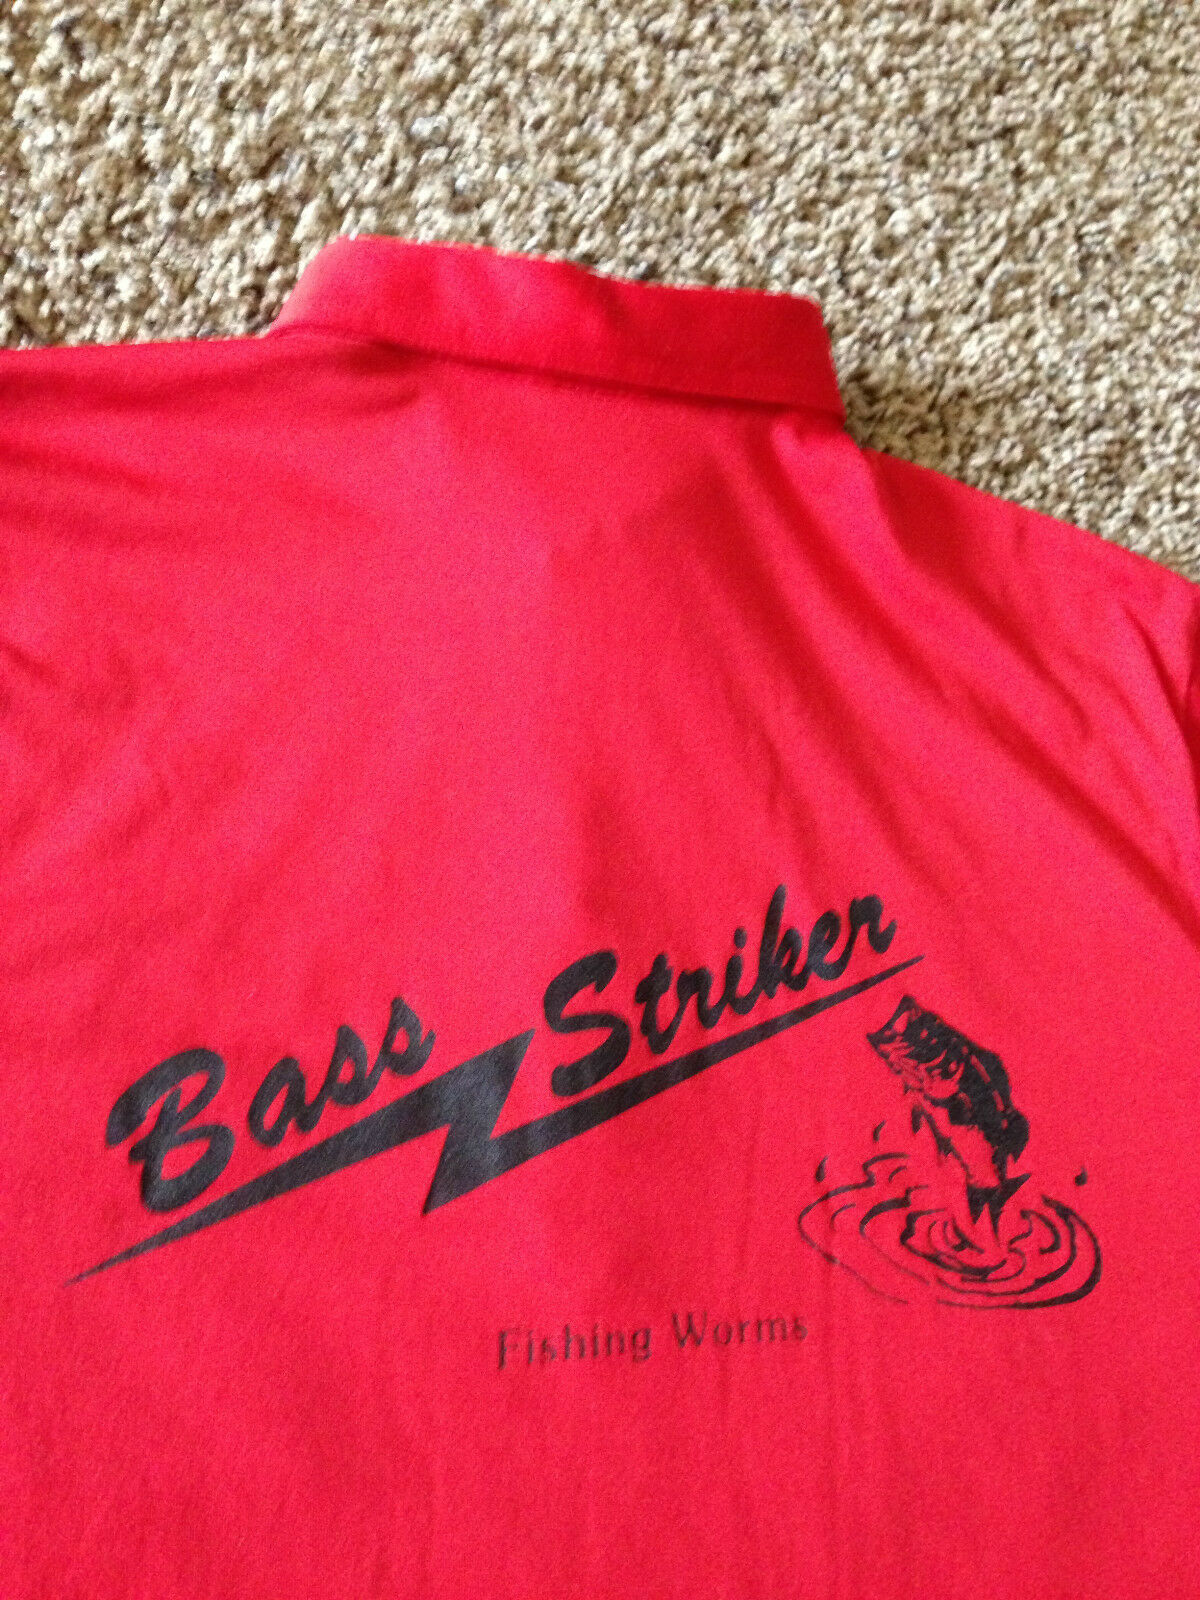 VTG 70's 80's Bass Striker  Fishing Worms Shirt Rare Lures Tournament Boat Fish  for cheap